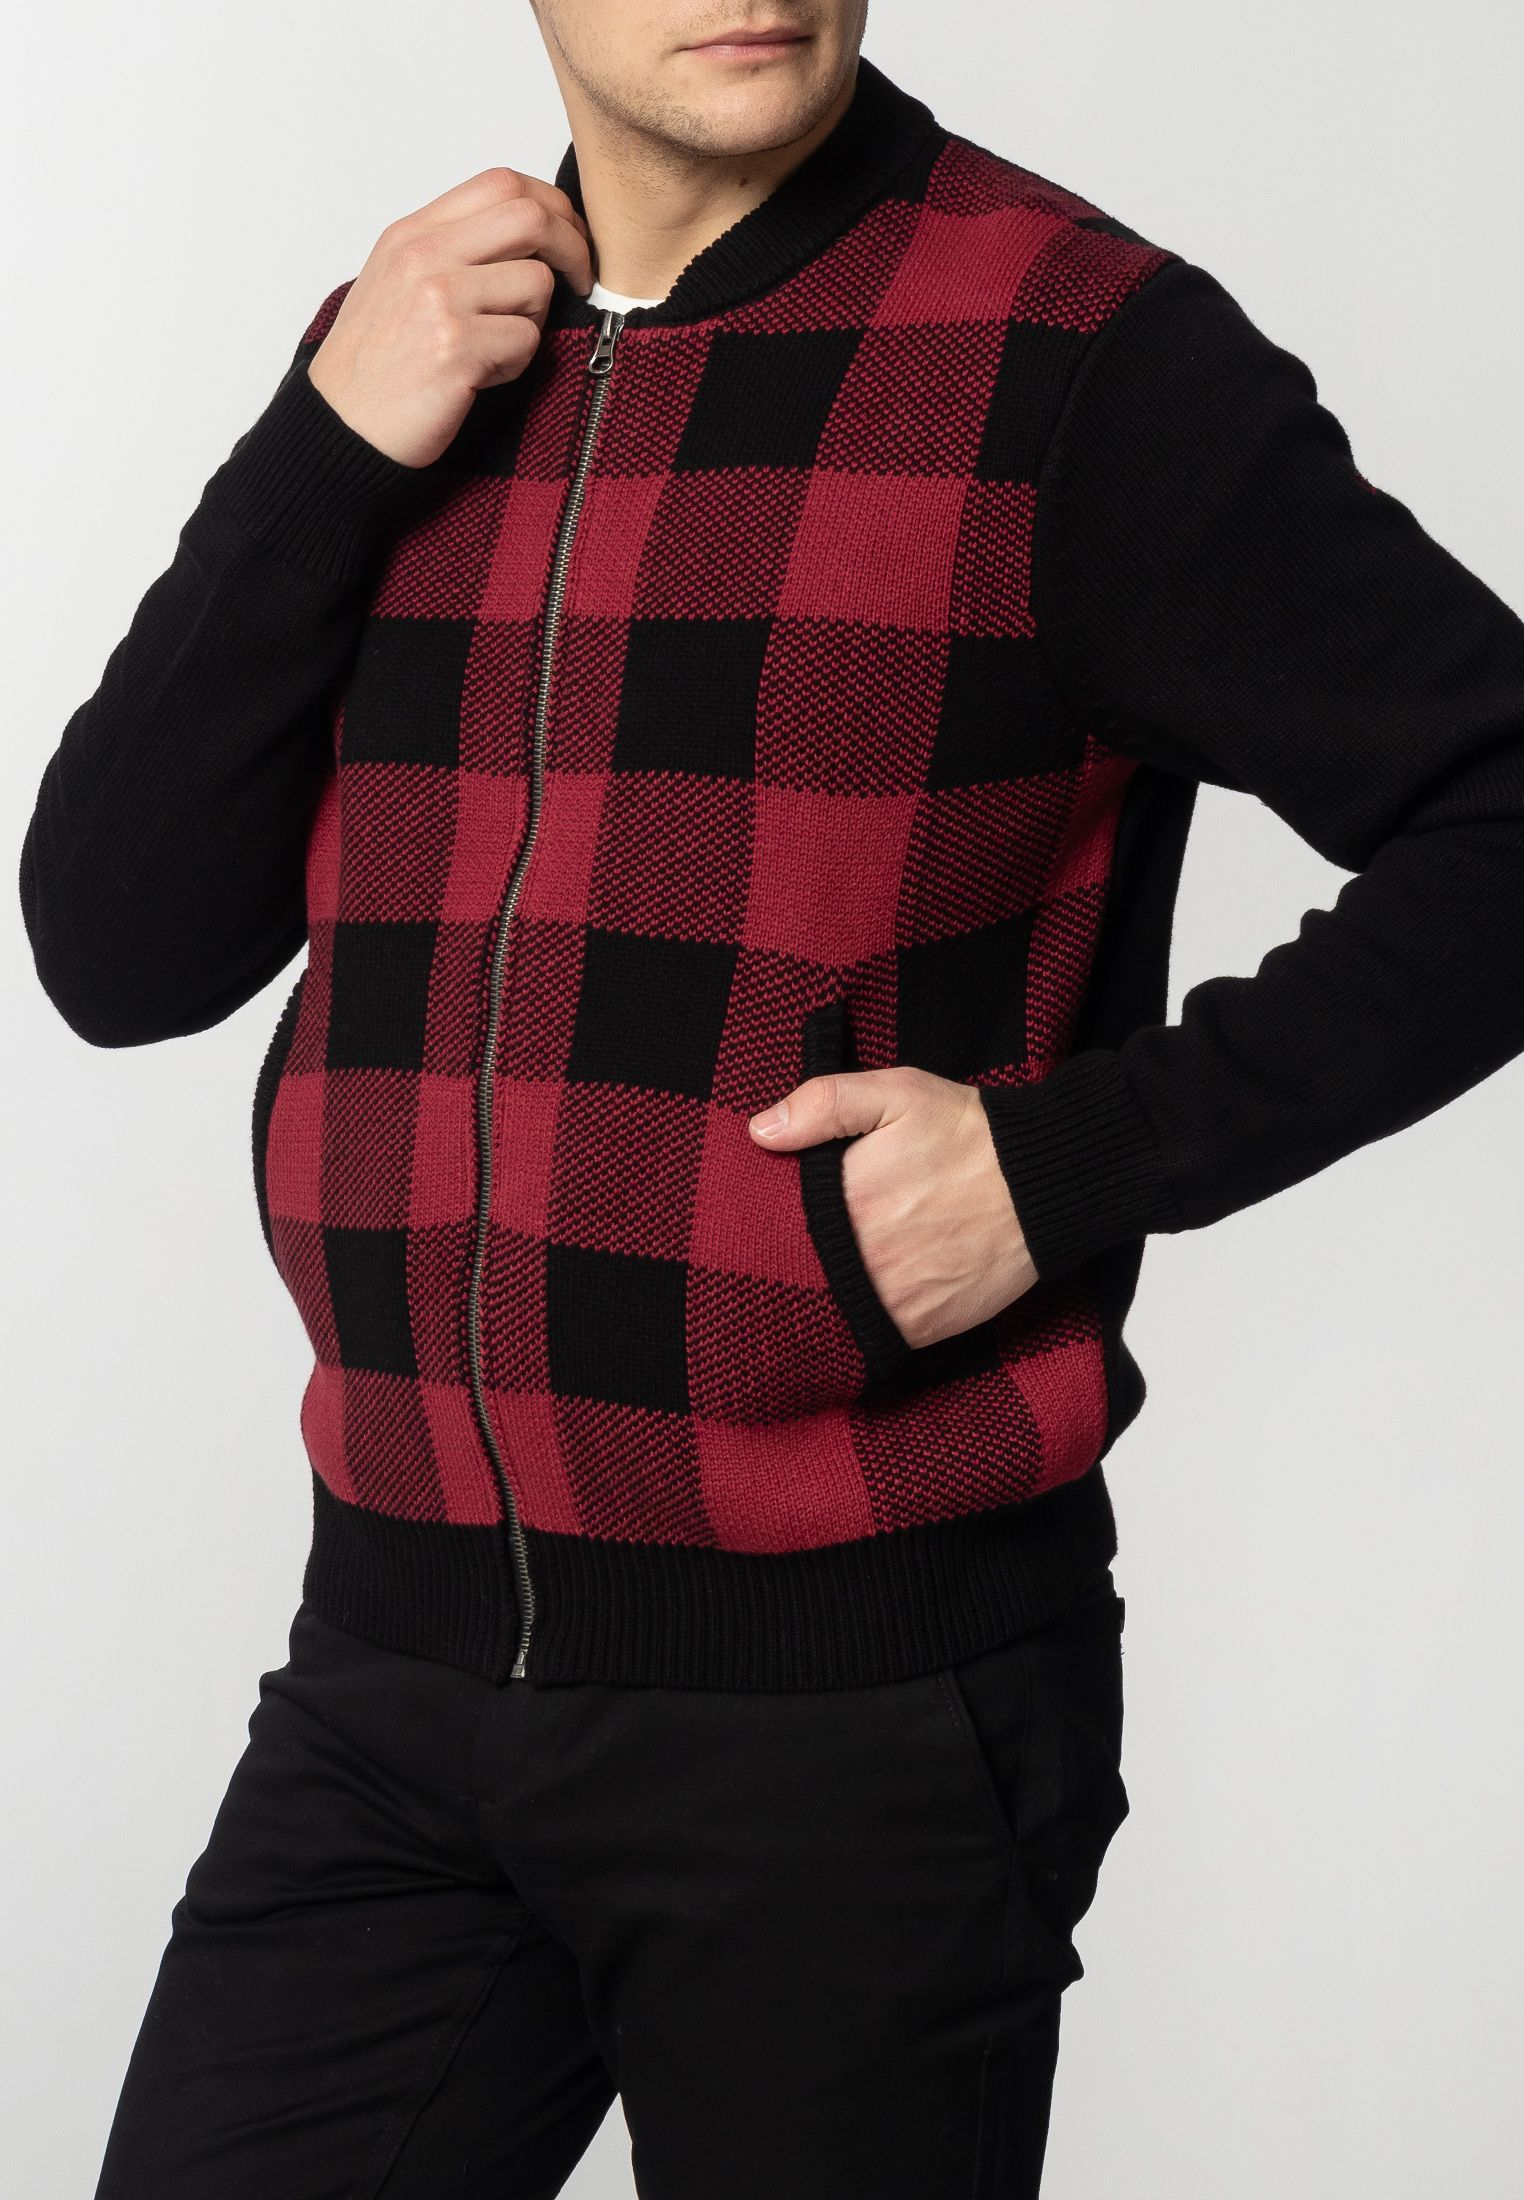 Apollo Mens Chunky Cotton Cardigan With Large Check Pattern In Black/Red